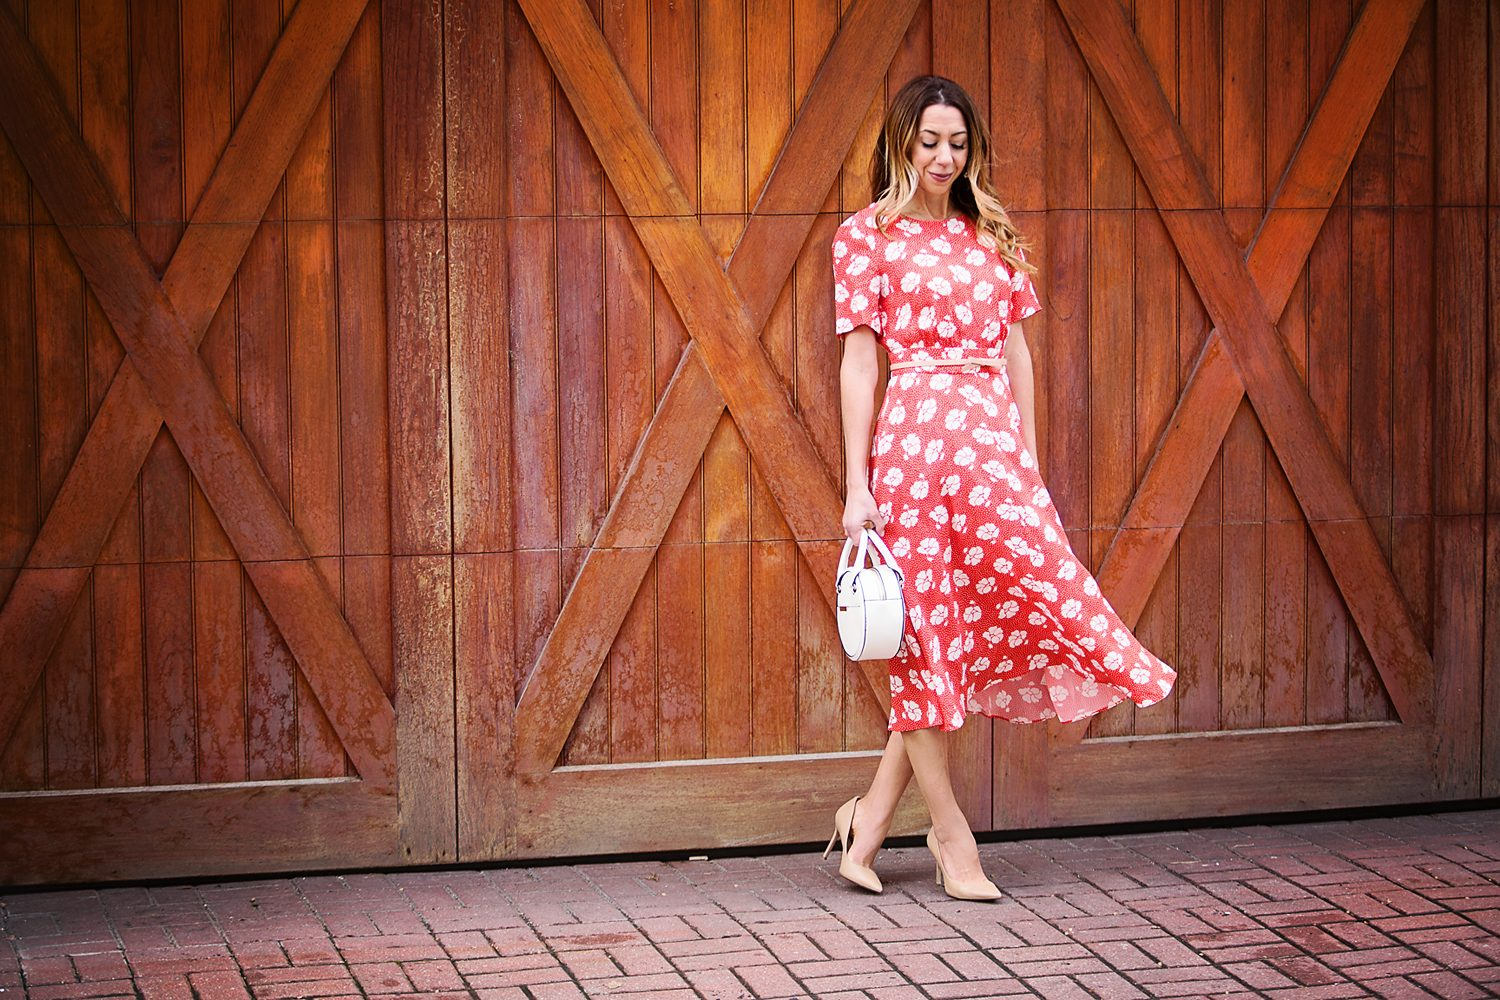 The Motherchic wearing a floral midi dress from Boden